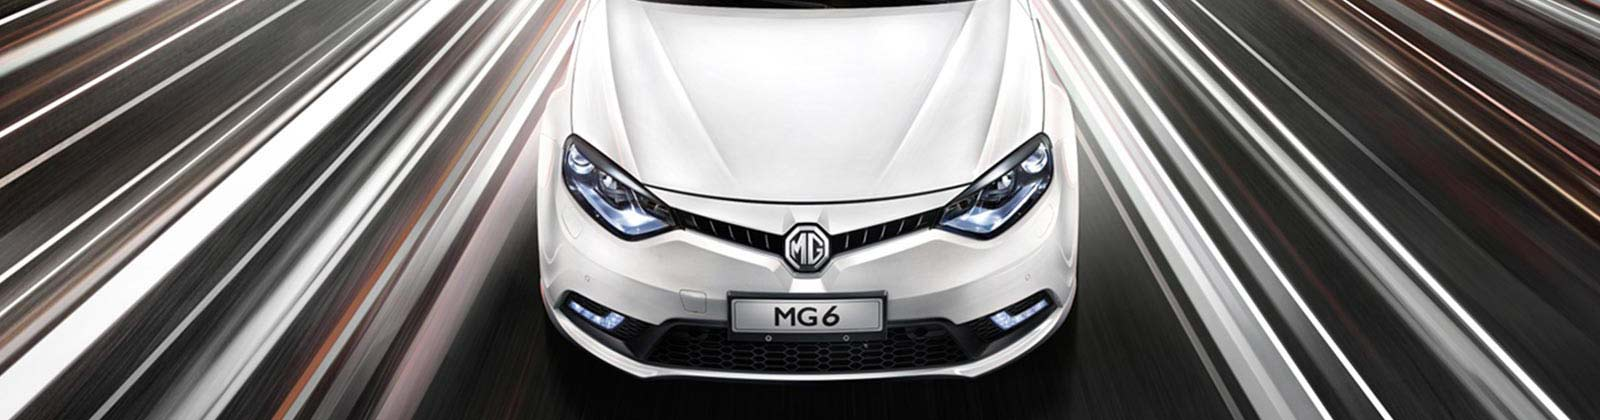 MG MG6 Plus in Mountain White front view